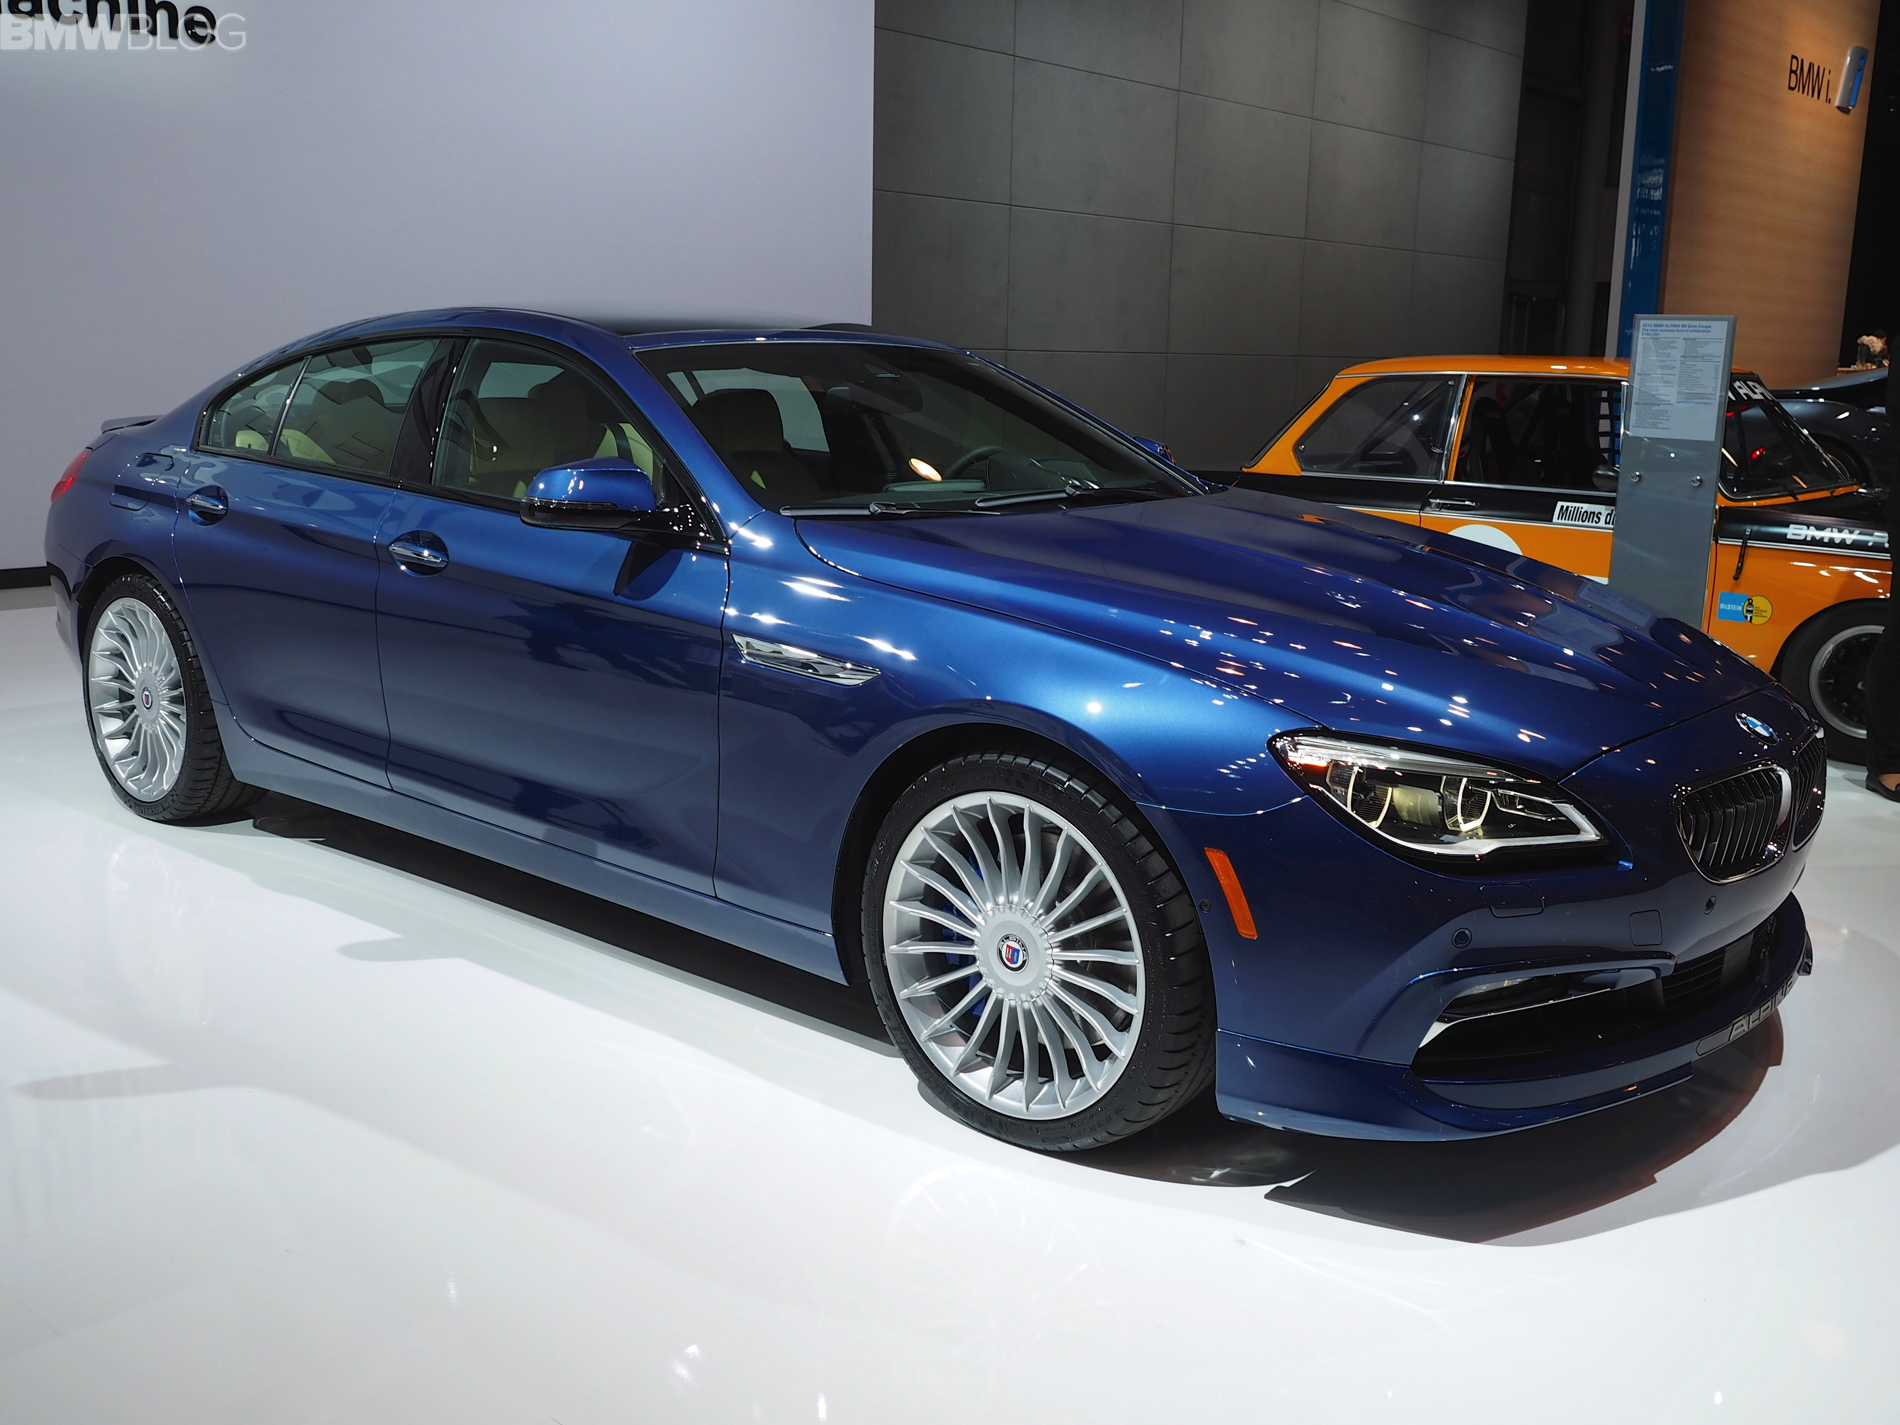 2015 Nyias 2016 Alpina B6 Xdrive Gran Coupe